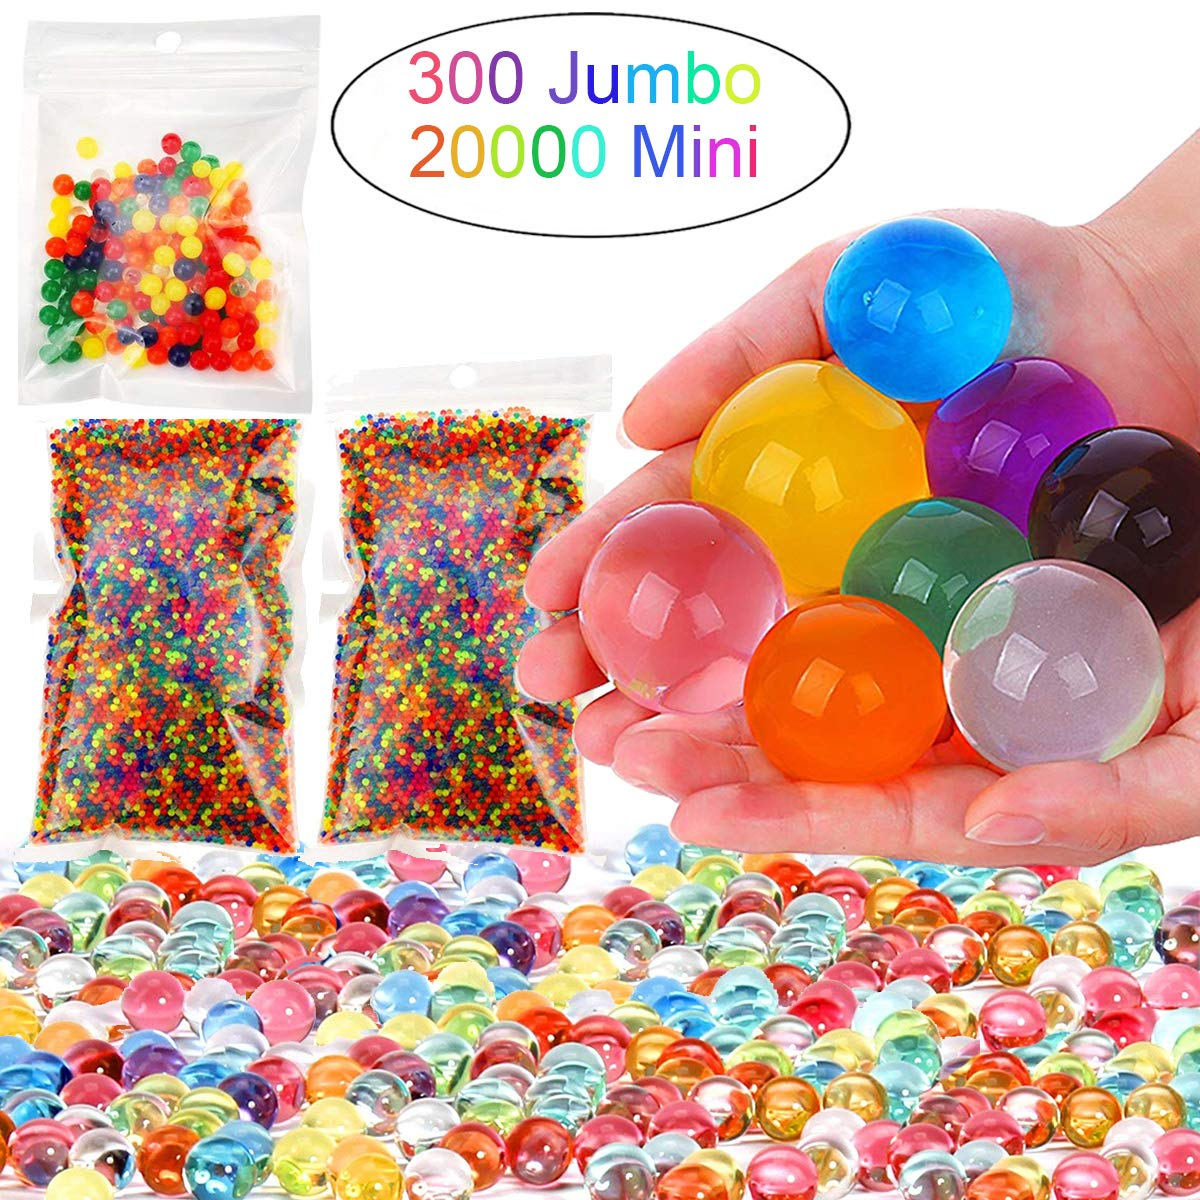 Leeche Non Toxic 300pcs Jumbo 20000 Small Water Beads Gel Beads Kit for Kids Value Package Sensory Toys and Decoration